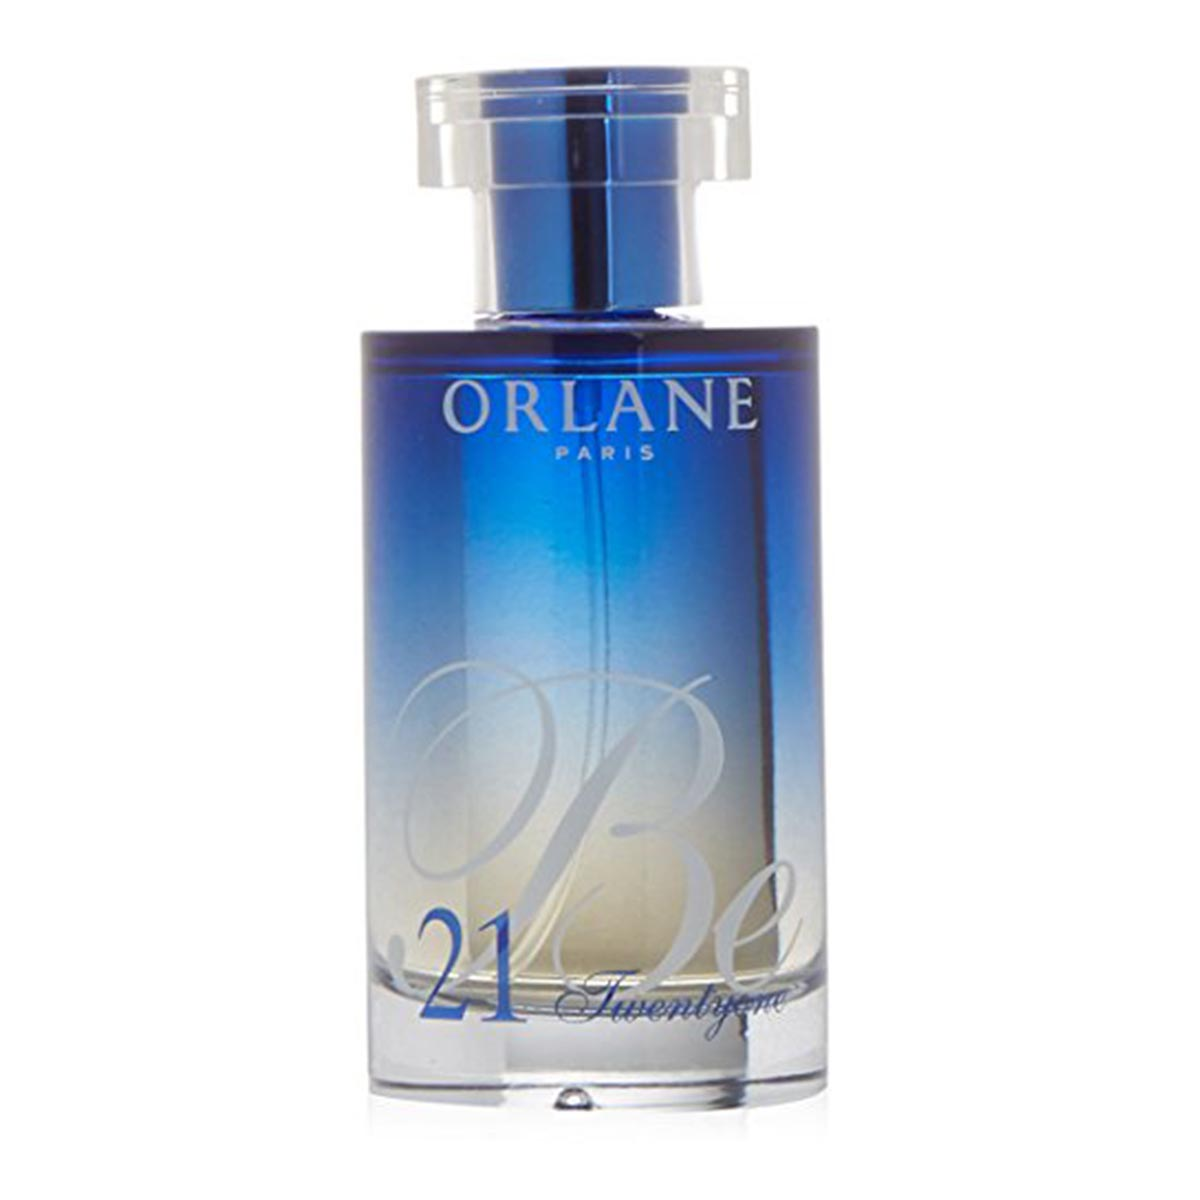 Orlane be 21 twentyone eau de parfum 100ml vaporizador